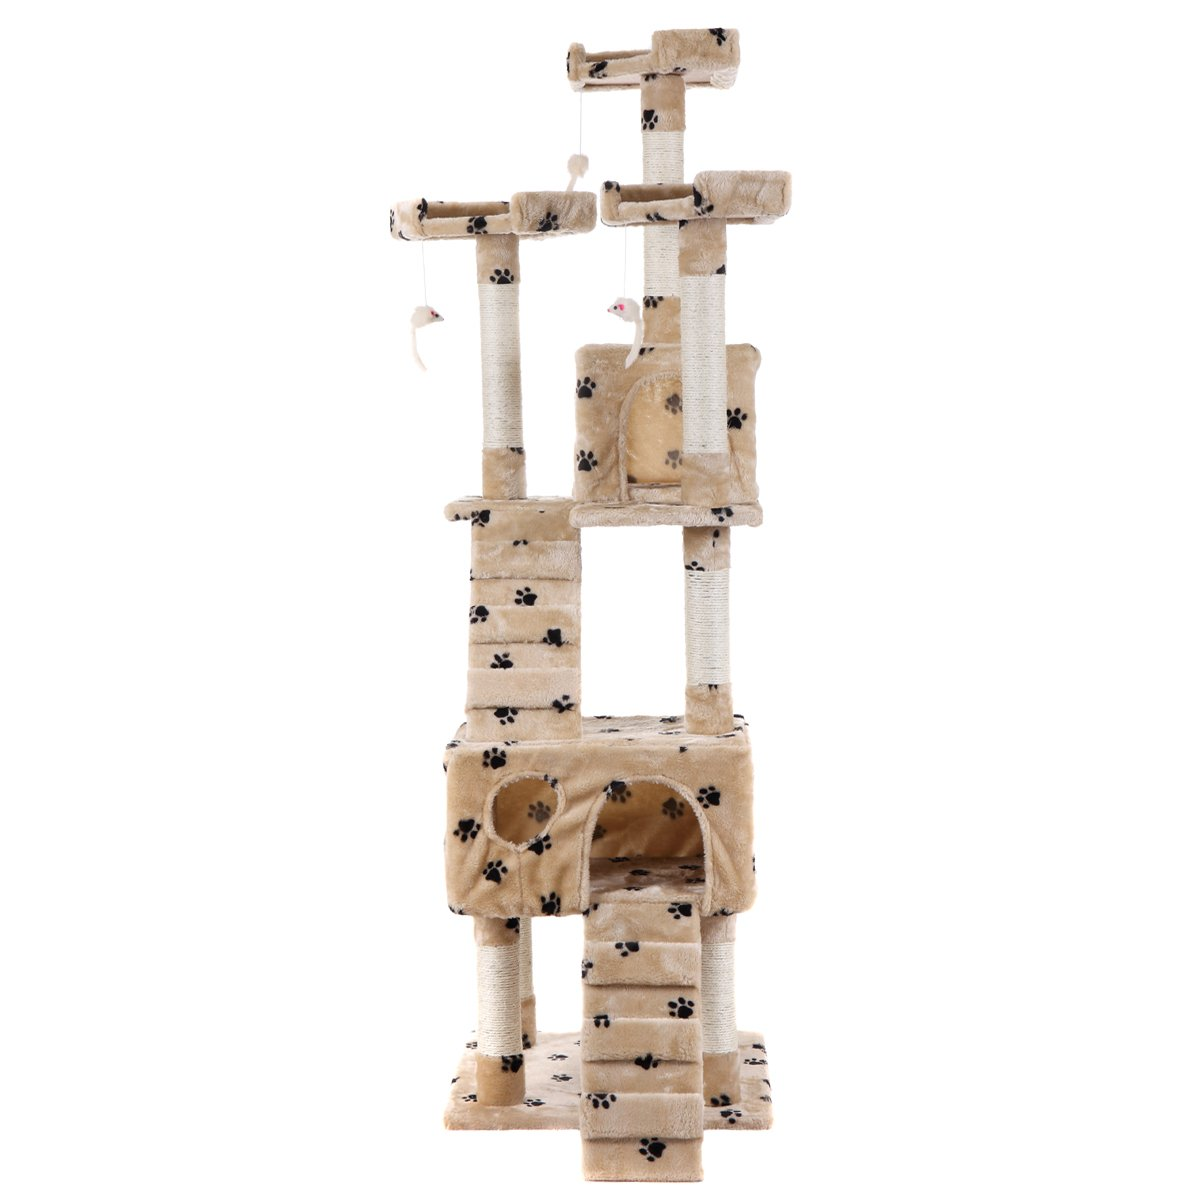 LAZYMOON 67'' Cat Tree 4-Tier Tower Condo Play House Furniture w/ Scratching posts and Toy Mouse Beige with Footprint by LAZYMOON (Image #8)